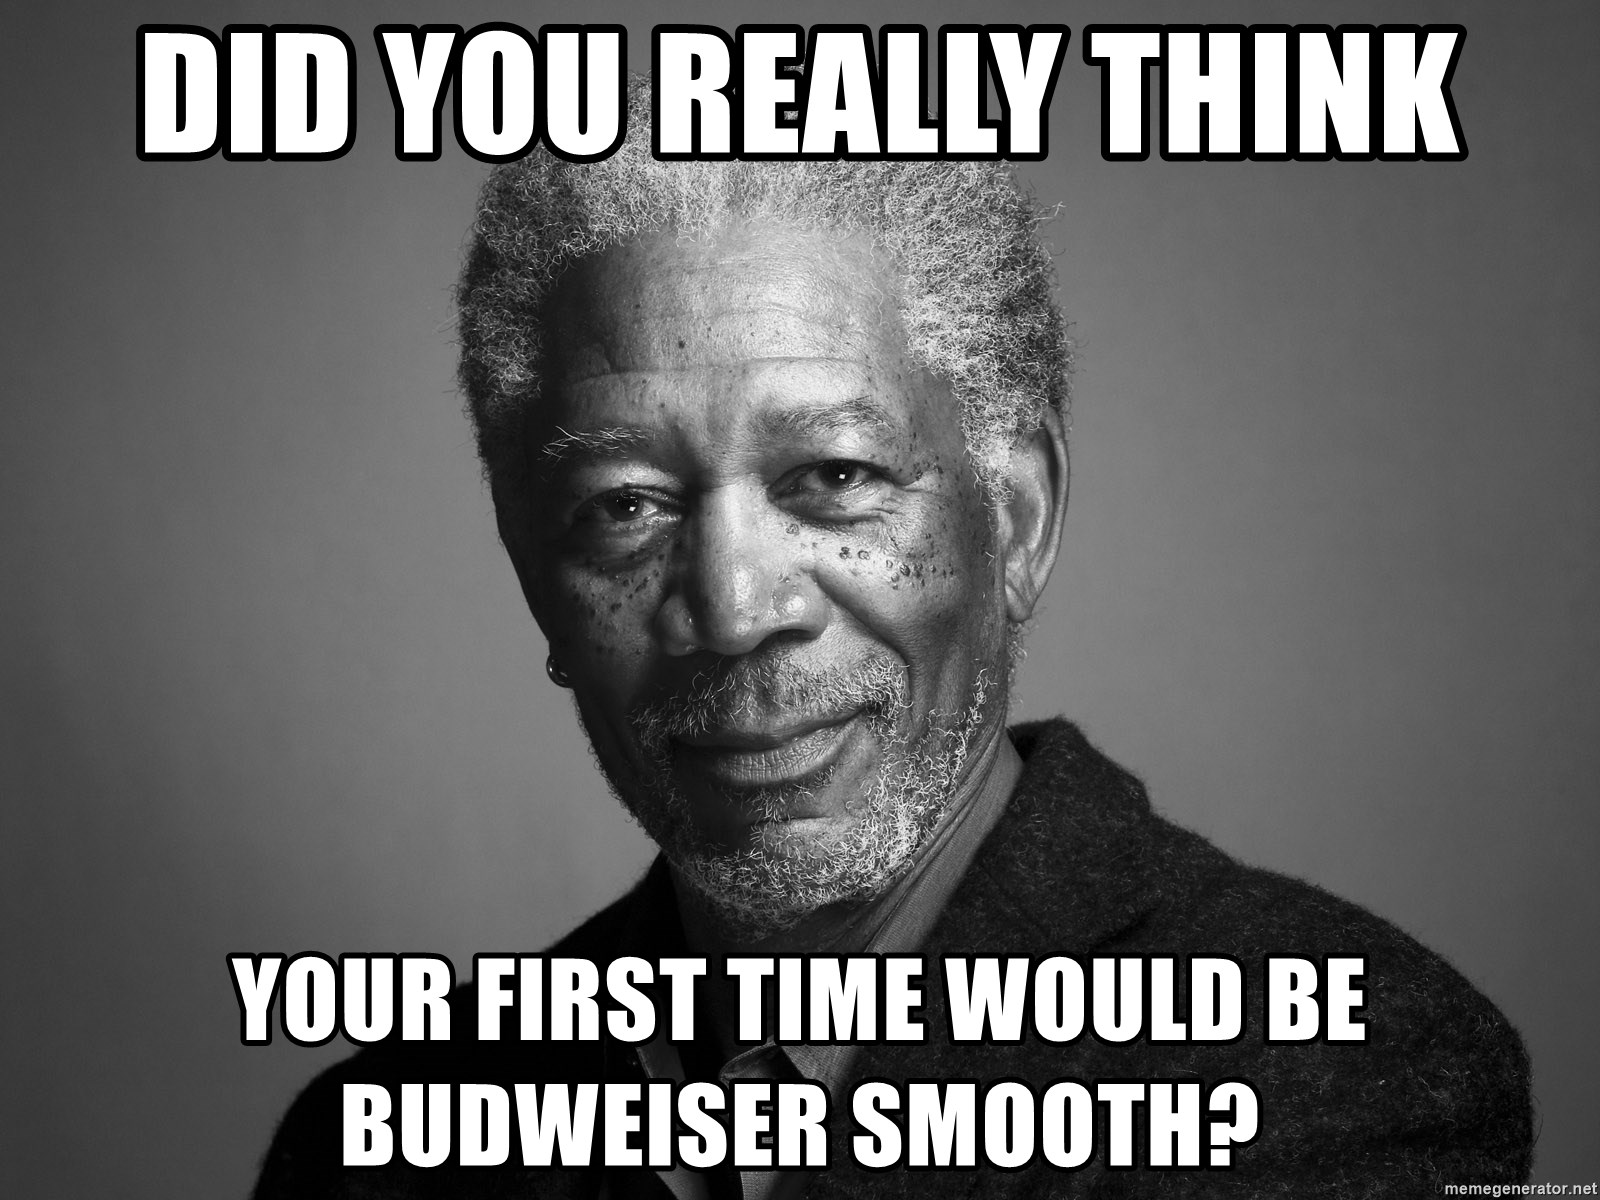 Morgan Freemann - did you really think your first time would be budweiser smooth?